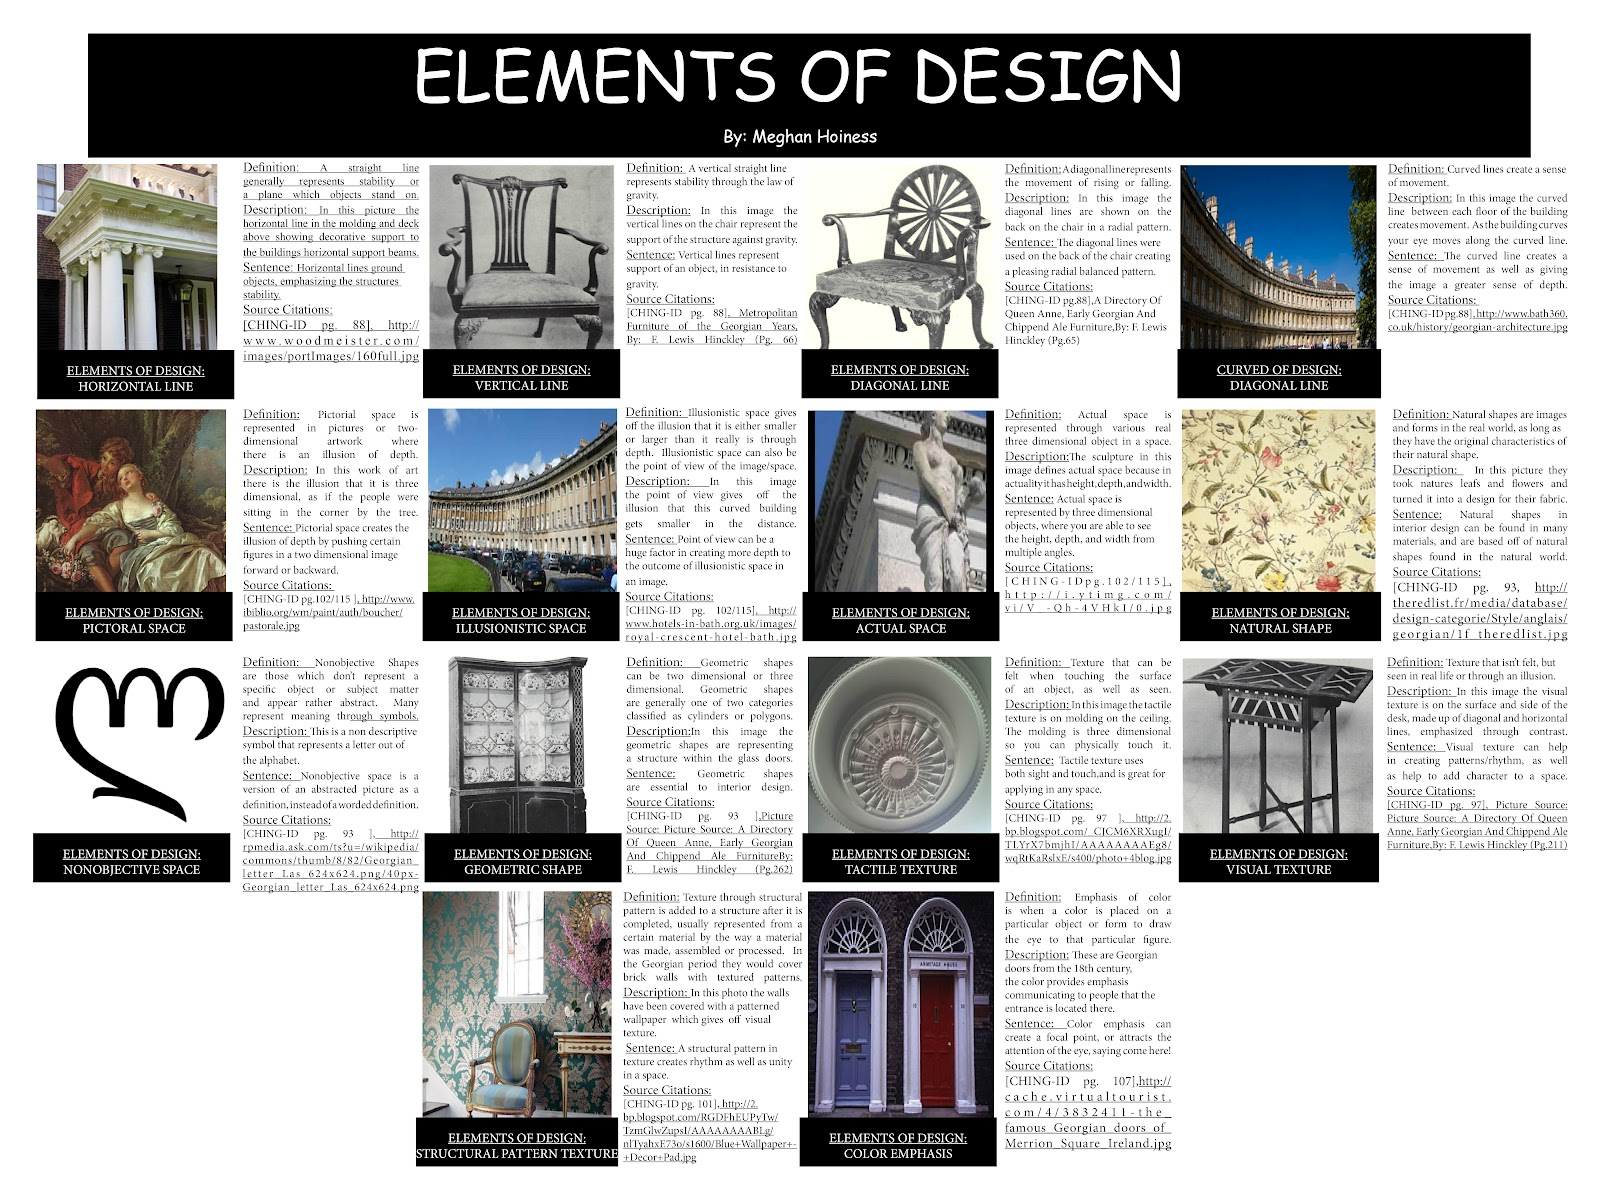 What Are The Elements Of Design : Meghan s interior design elements principles of desgin